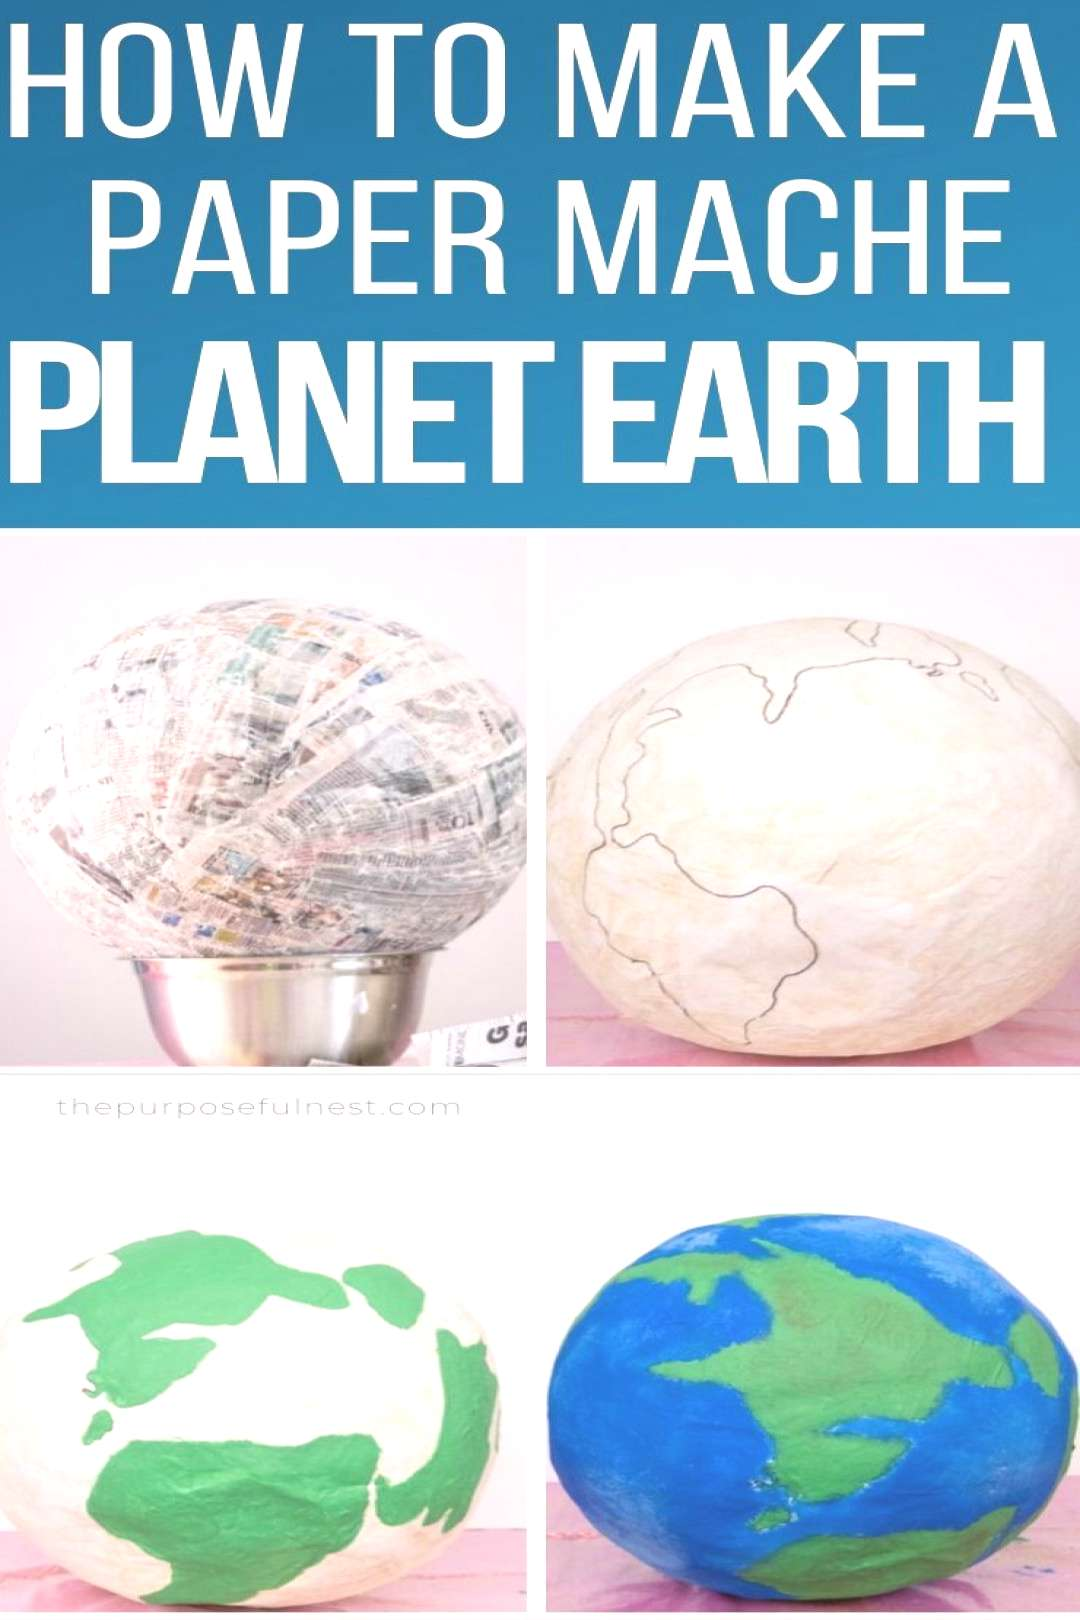 How to Make a Paper Mache Planet Earth Space Party Prop | The Purposeful Nest